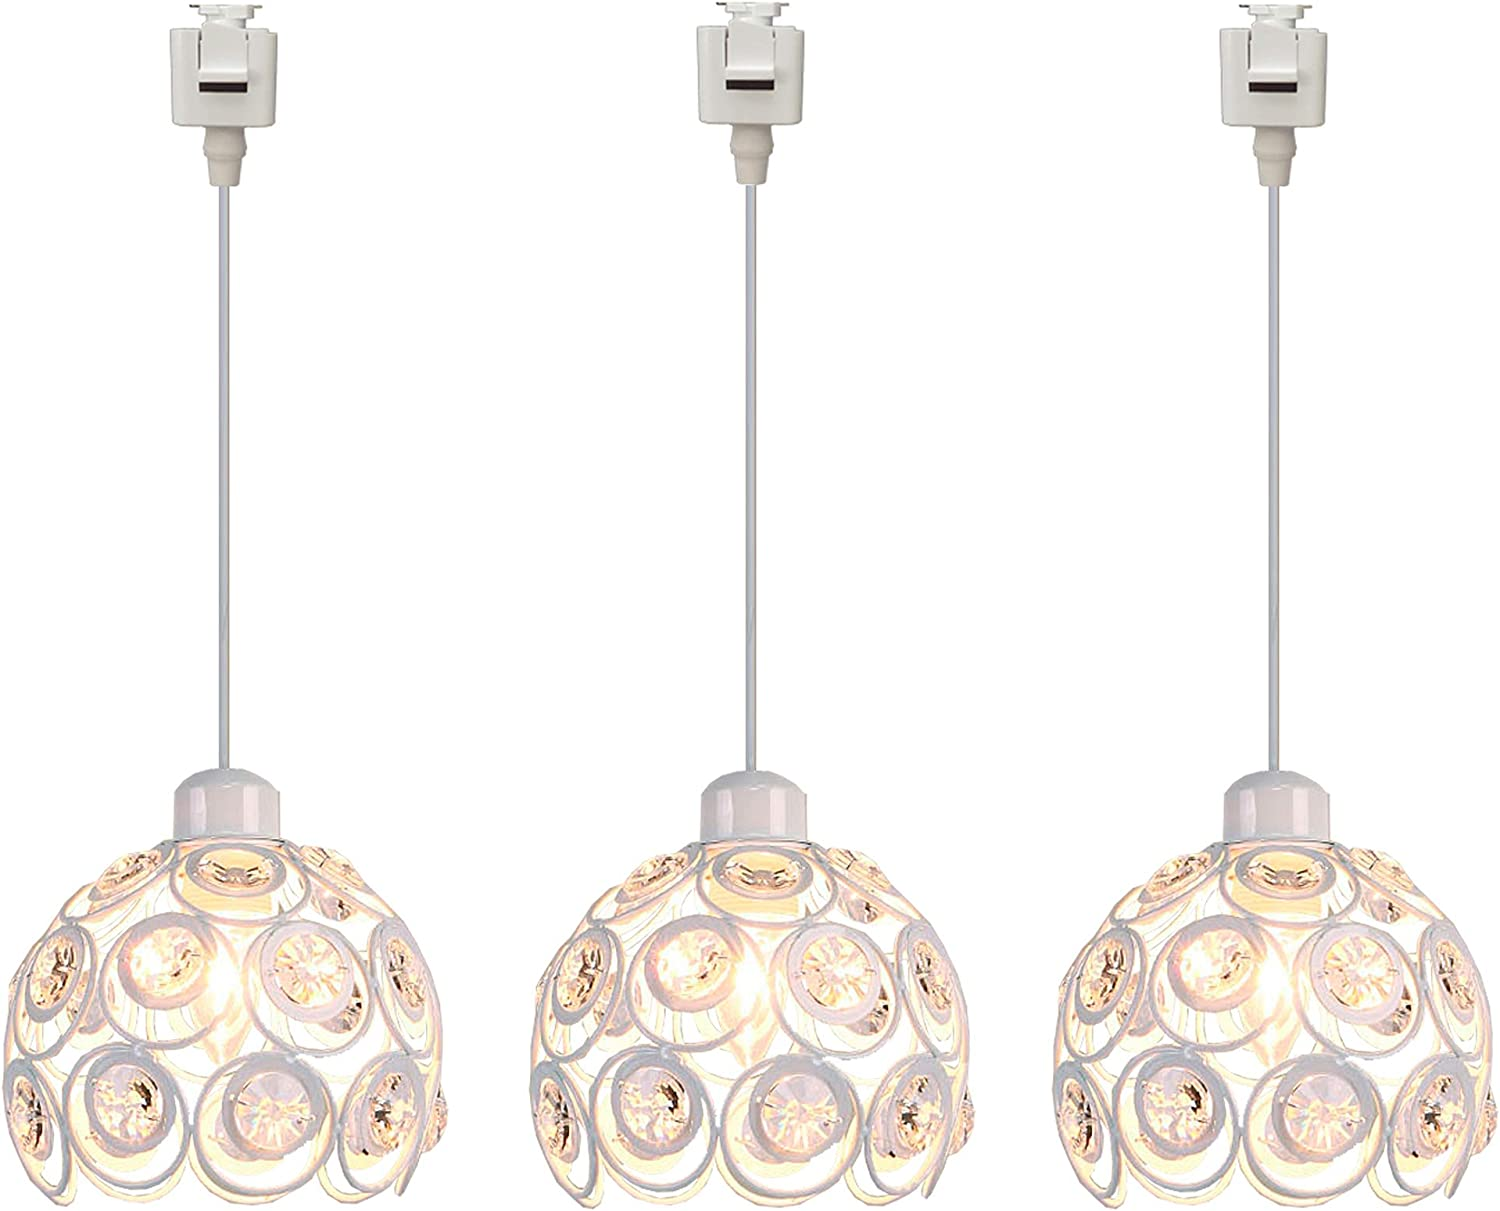 SKIVTGLAMP Dimmable Iron Globe Pendant Light Juno-Type Track Light Gold Modern Clear Crystal Lamp Shade Industrial Vintage Instant on Track Mount Pendant lights for Kitchen Island Customizable 1 Light